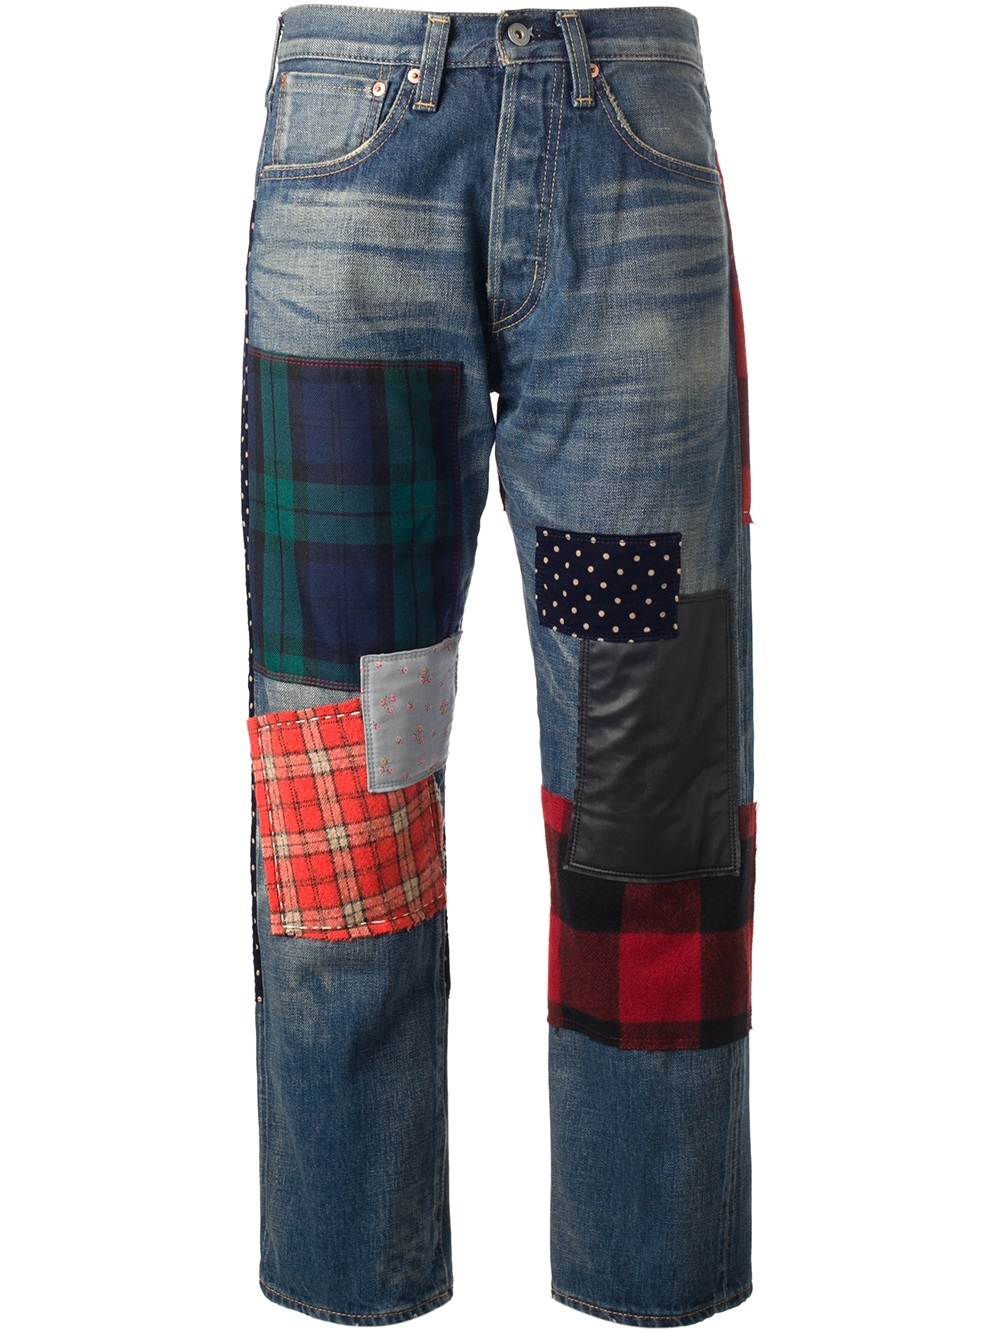 Patchwork Jeans Womens - Jeans Am